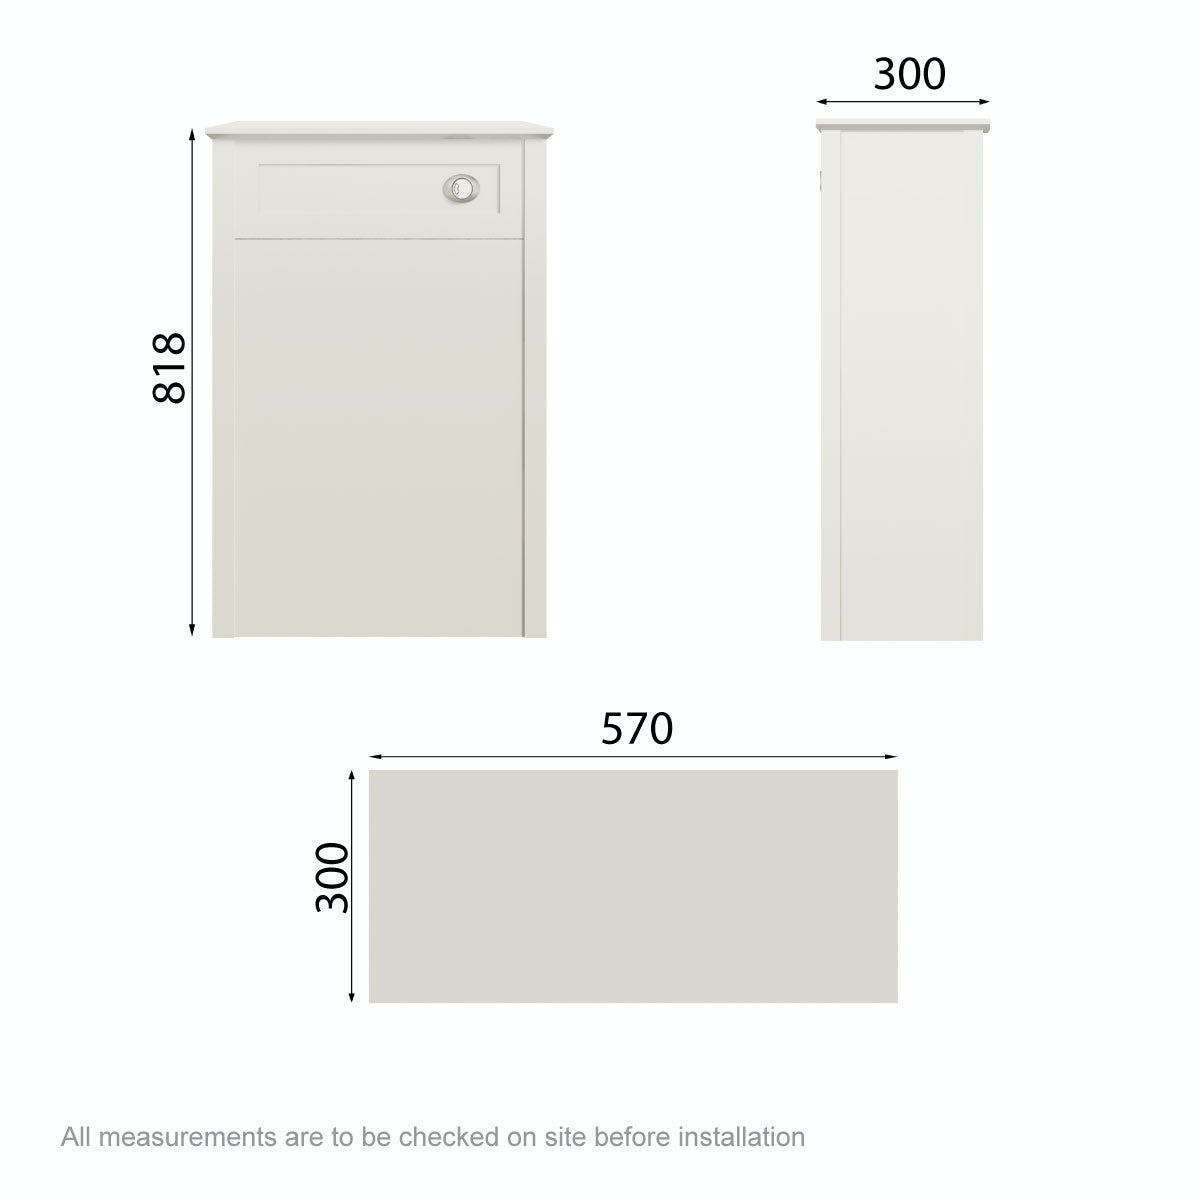 Dimensions for The Bath Co. Camberley satin ivory back to wall unit